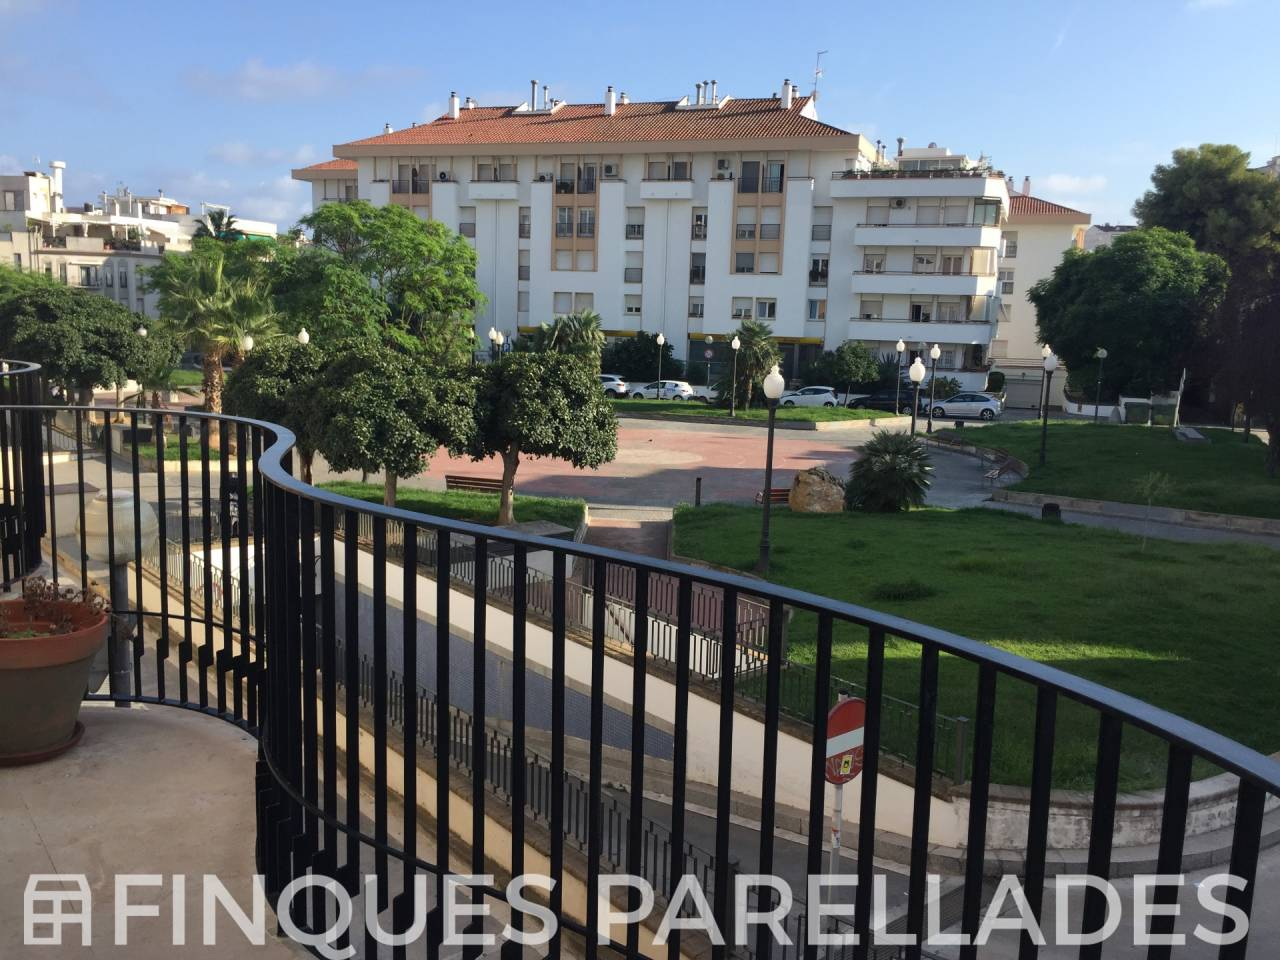 Magnificent and spacious house with four floors with elevator in unbeatable situation in Sitges. Downtown area.